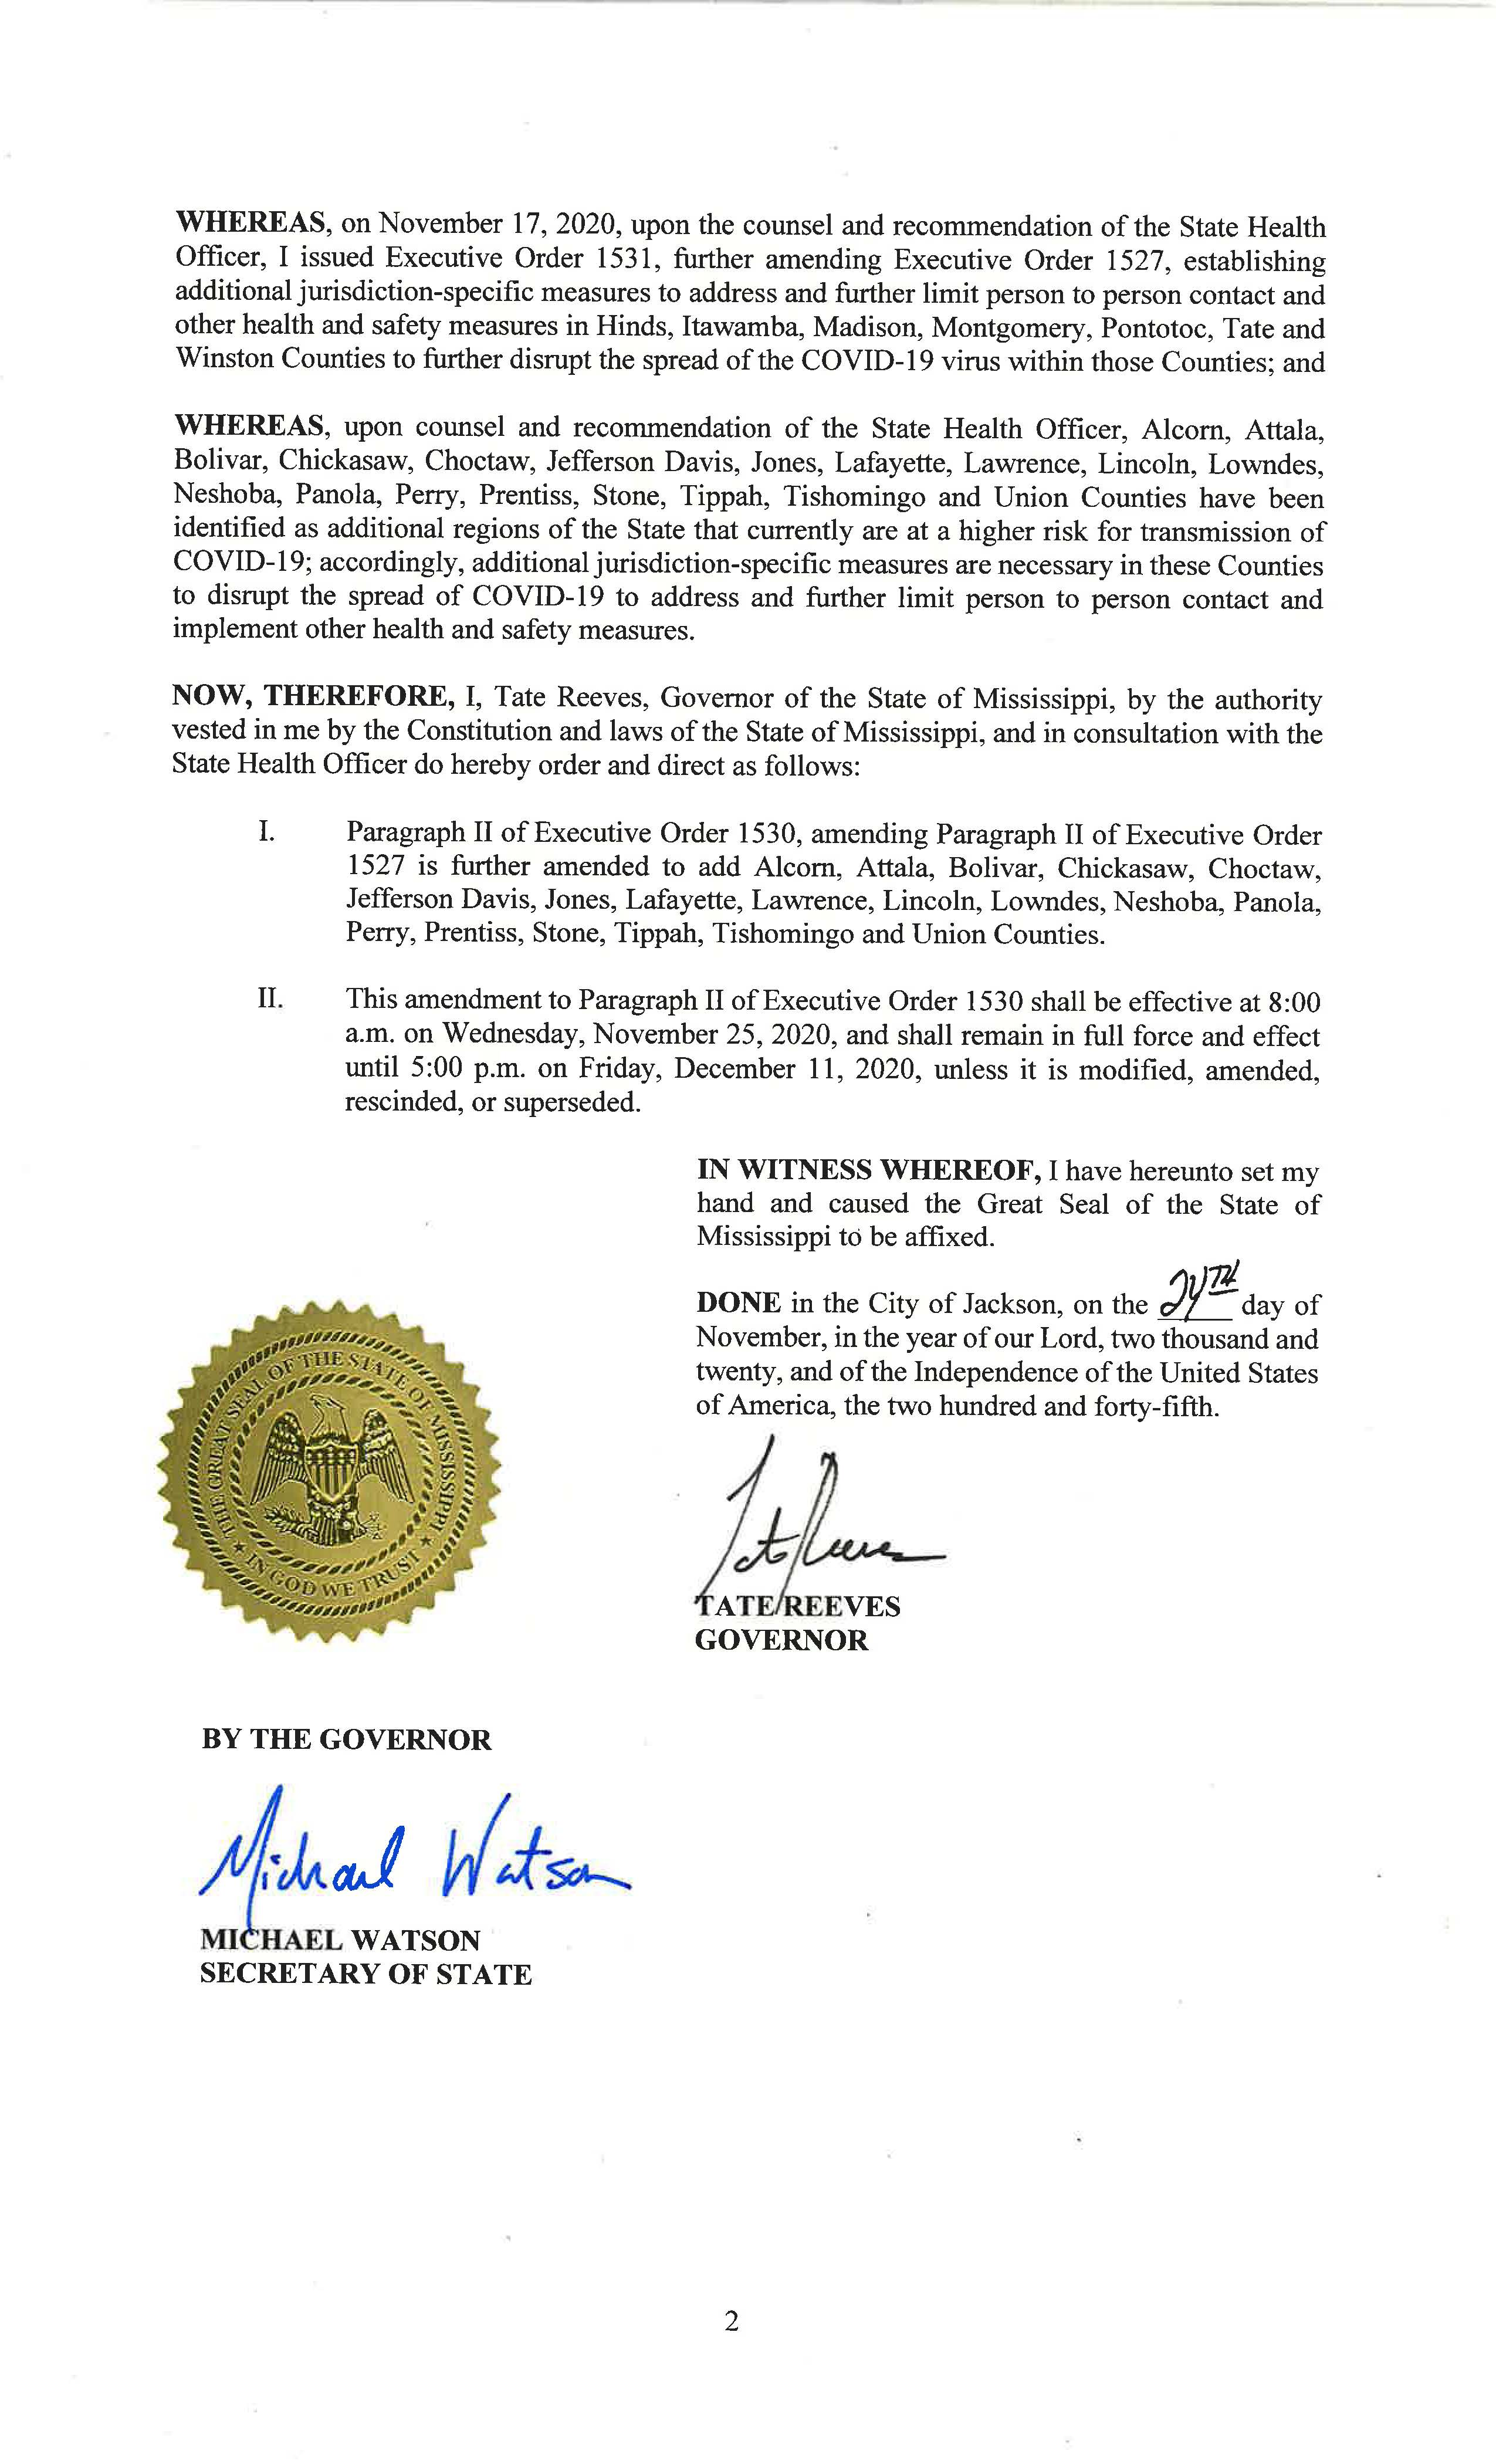 WHEREAS, on November 17, 2020, upon the counsel and recommendation of the State Health Officer, I issued Executive Order 1531, further amending Executive Order 1527, establishing additional jurisdiction-specific measures to address and further limit person to person contact and other health and safety measures in Hinds, Itawamba, Madison, Montgomery, Pontotoc, Tate and Winston Counties to further disrupt the spread of the COVID-19 virus within those Counties; and  WHEREAS, upon counsel and recommendation of the State Health Officer, Alcorn, Attala, Bolivar, Chickasaw, Choctaw, Jefferson Davis, Jones, Lafayette, Lawrence, Lincoln, Lowndes, Neshoba, Panola, Perry, Prentiss, Stone, Tippah, Tishomingo and Union Counties have been identified as additional regions of the State that currently are at a higher risk for transmission of COVID-19; accordingly, additional jurisdiction-specific measures are necessary in these Counties to disrupt the spread of COVID-19 to address and further limit person to person contact and implement other health and safety measures.  NOW, THEREFORE, I, Tate Reeves, Governor of the State of Mississippi, by the authority vested in me by the Constitution and laws of the State of Mississippi, and in consultation with the State Health Officer do hereby order and direct as follows: I.	Paragraph II of Executive Order 1530, amending Paragraph II of Executive Order 1527 is further amended to add Alcorn, Attala, Bolivar, Chickasaw, Choctaw, Jefferson Davis, Jones, Lafayette, Lawrence, Lincoln, Lowndes, Neshoba, Panola, Perry, Prentiss, Stone, Tippah, Tishomingo and Union Counties. II.	This amendment to Paragraph II of Executive Order 1530 shall be effective at 8:00 a.	m. on Wednesday, November 25, 2020, and shall remain in full force and effect until 5:00 p.m. on Friday, December 11, 2020, unless it is modified, amended, rescinded, or superseded.I.	Paragraph II of Executive Order 1530, amending Paragraph II of Executive Order 1527 is further amended to add Alcorn, Attala, Bolivar, Chickasaw, Choctaw,